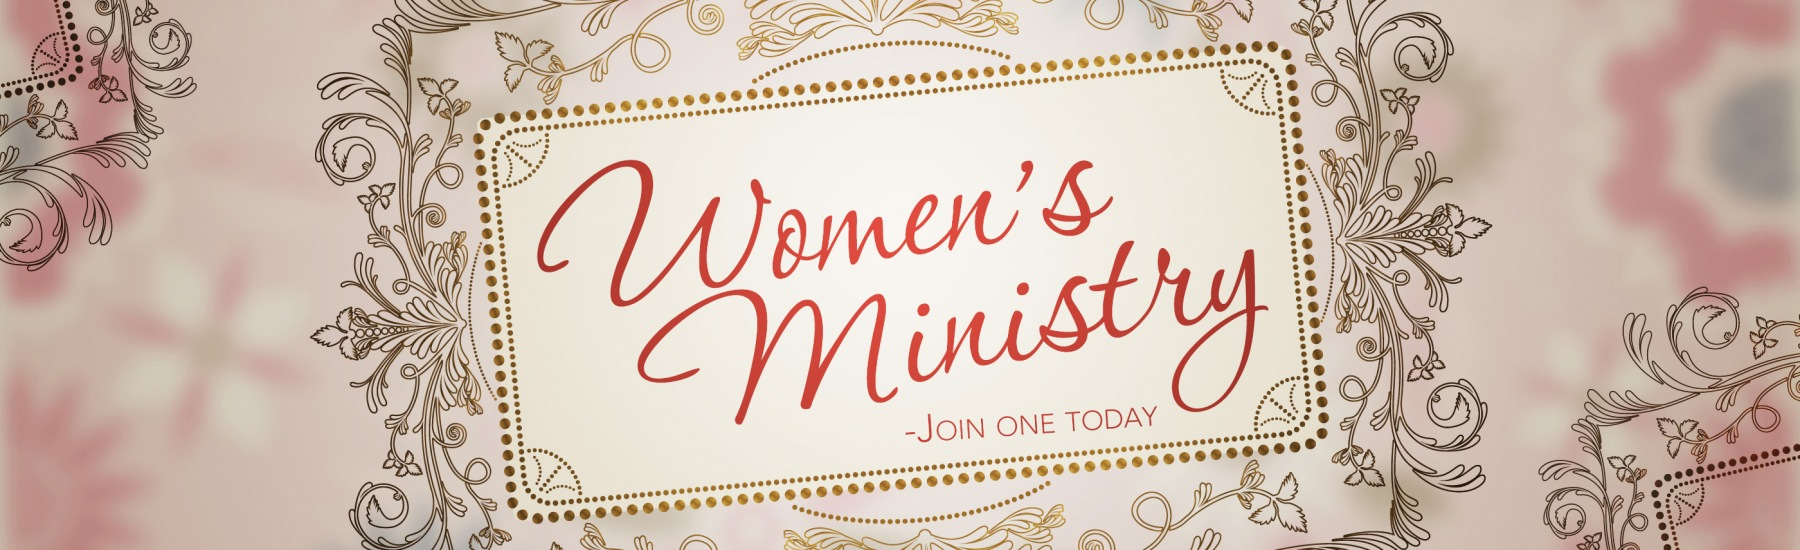 Women's Ministry (P31)